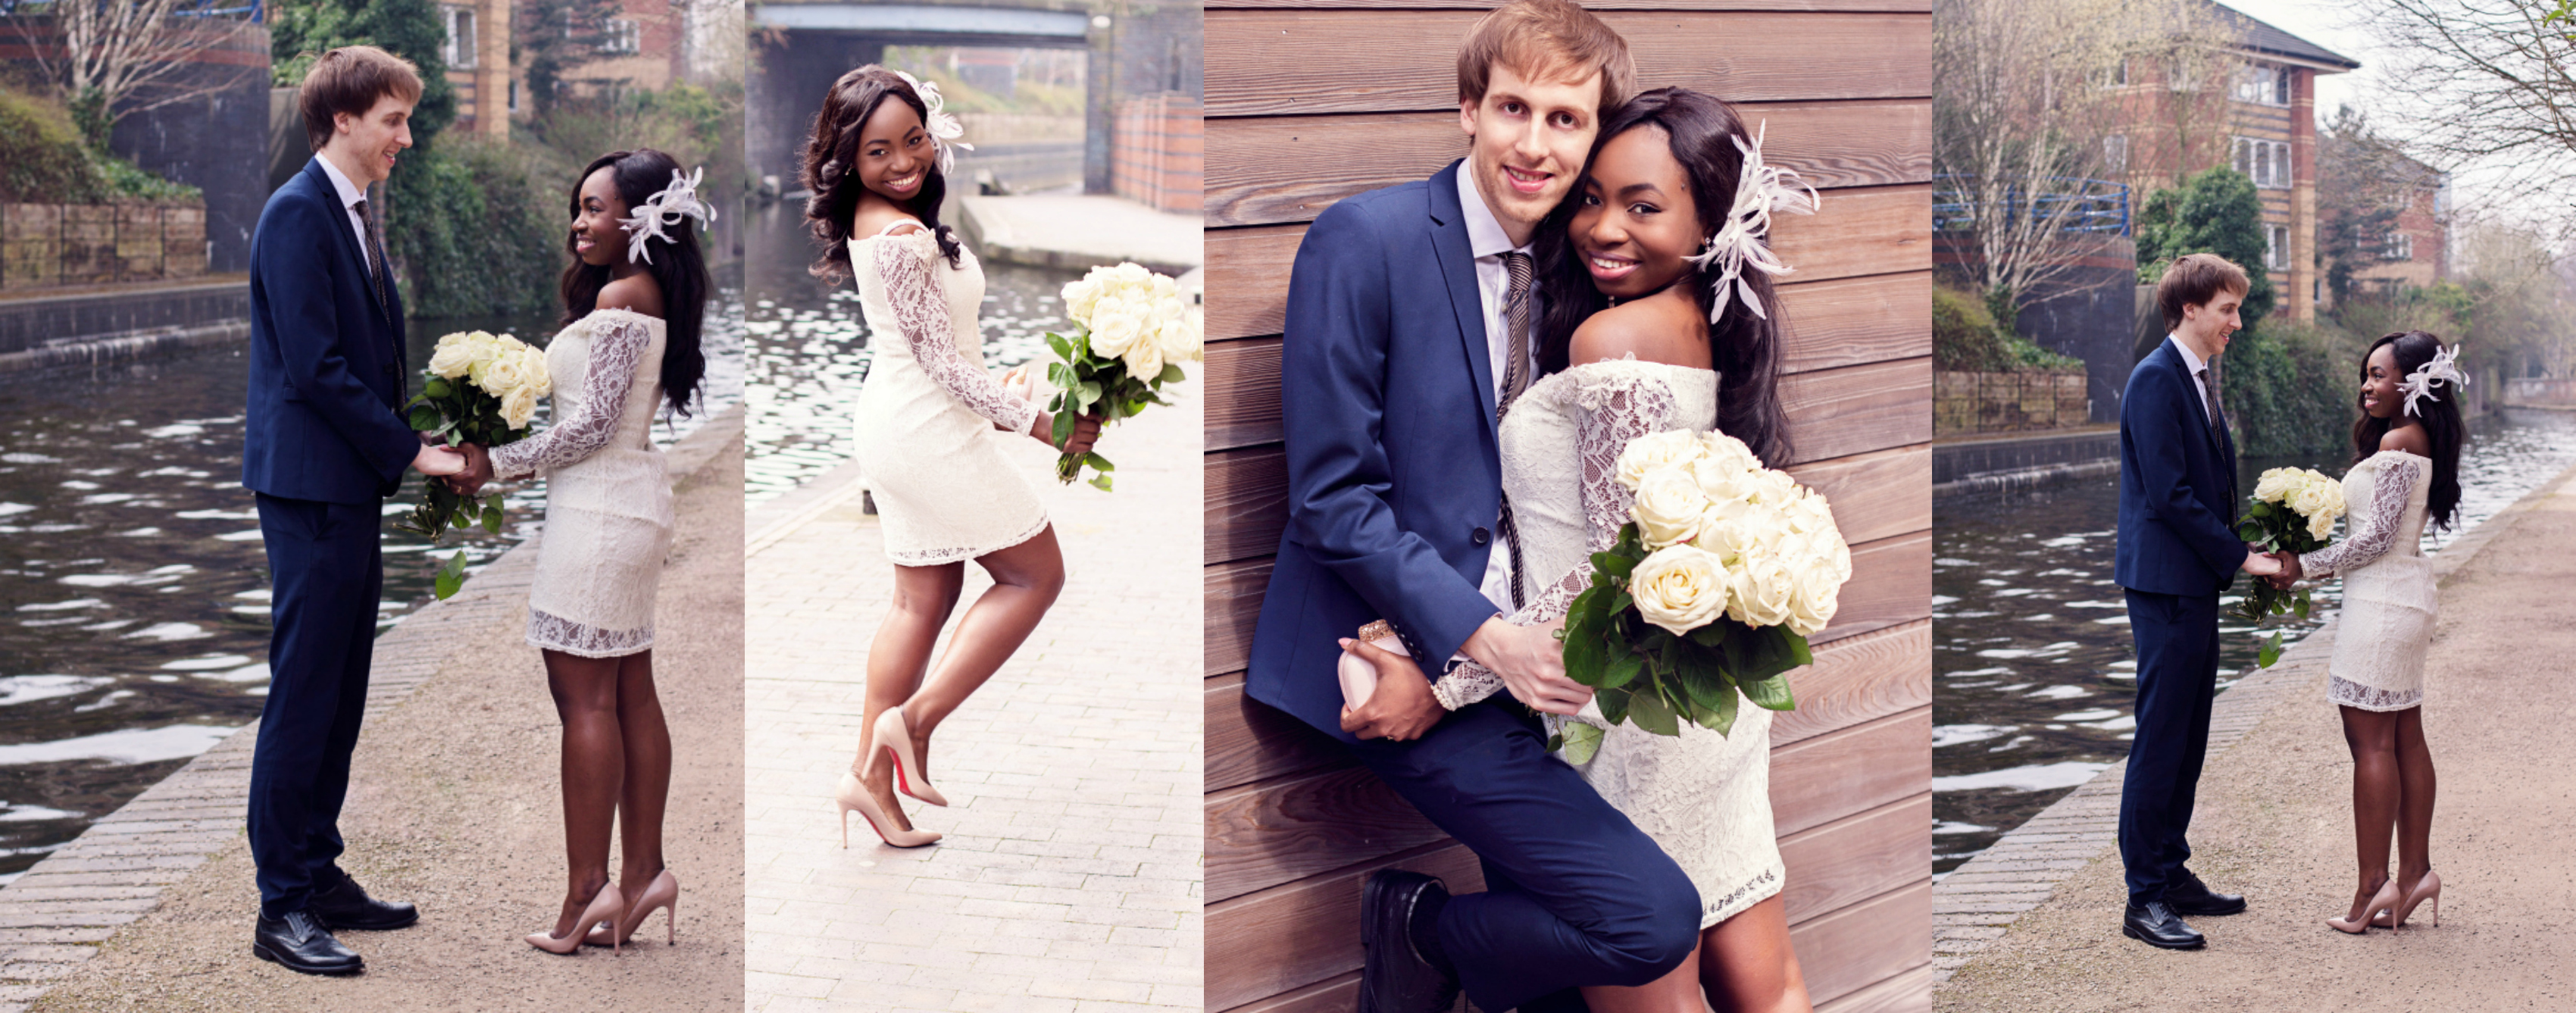 ABY LIFE: Lydia & Mathew Tie The Knot